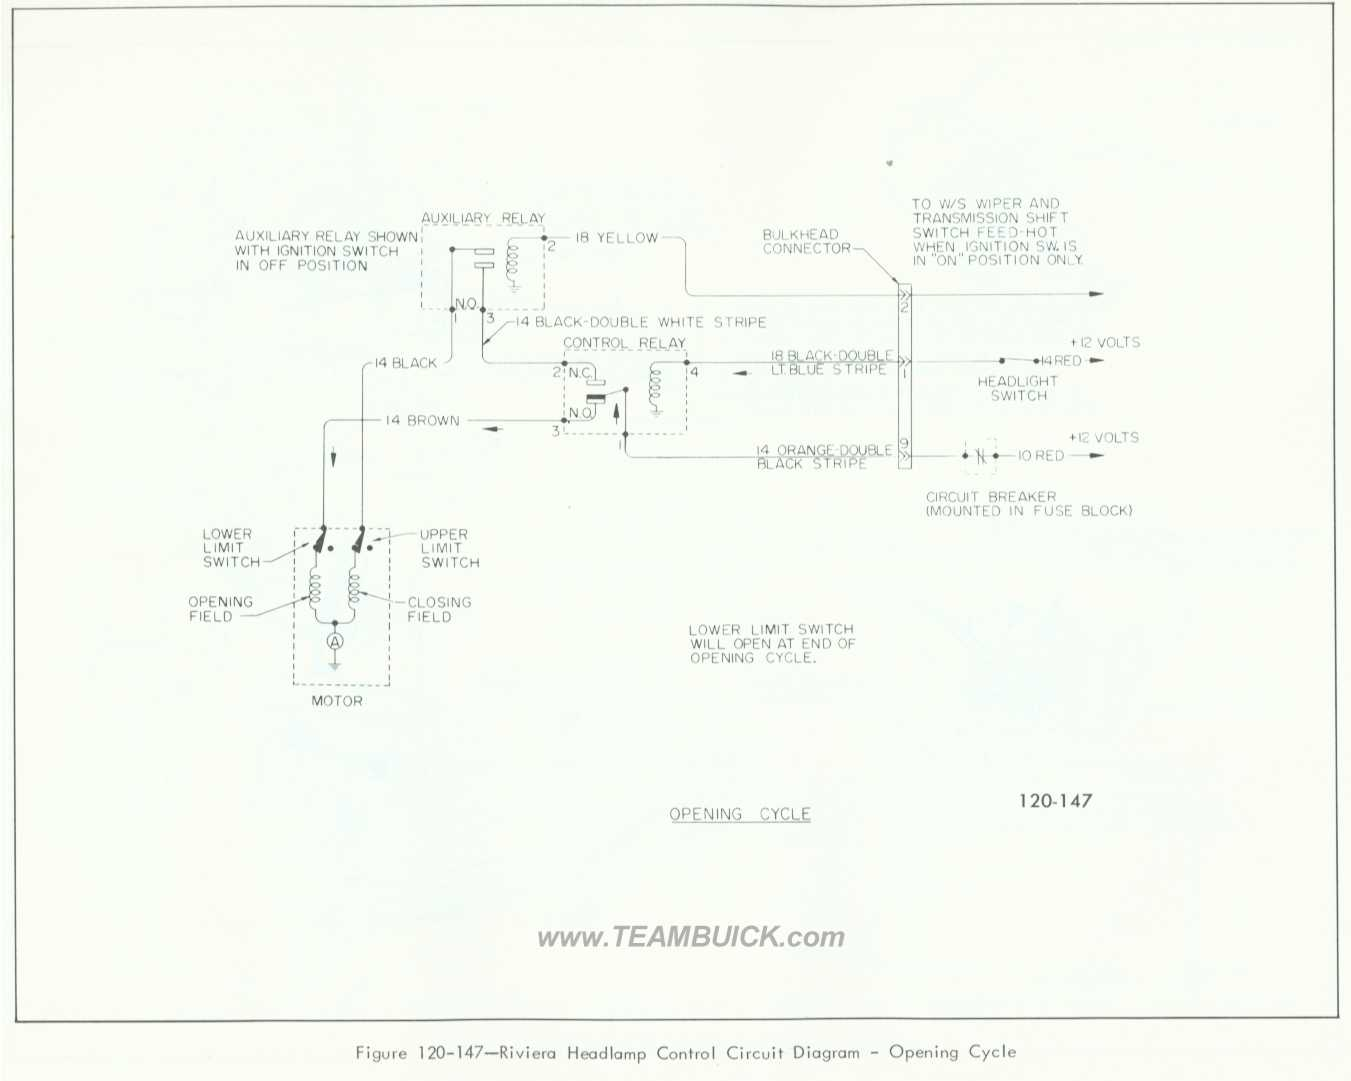 1966 Buick Riviera, Headlamp Control Circuit Diagram